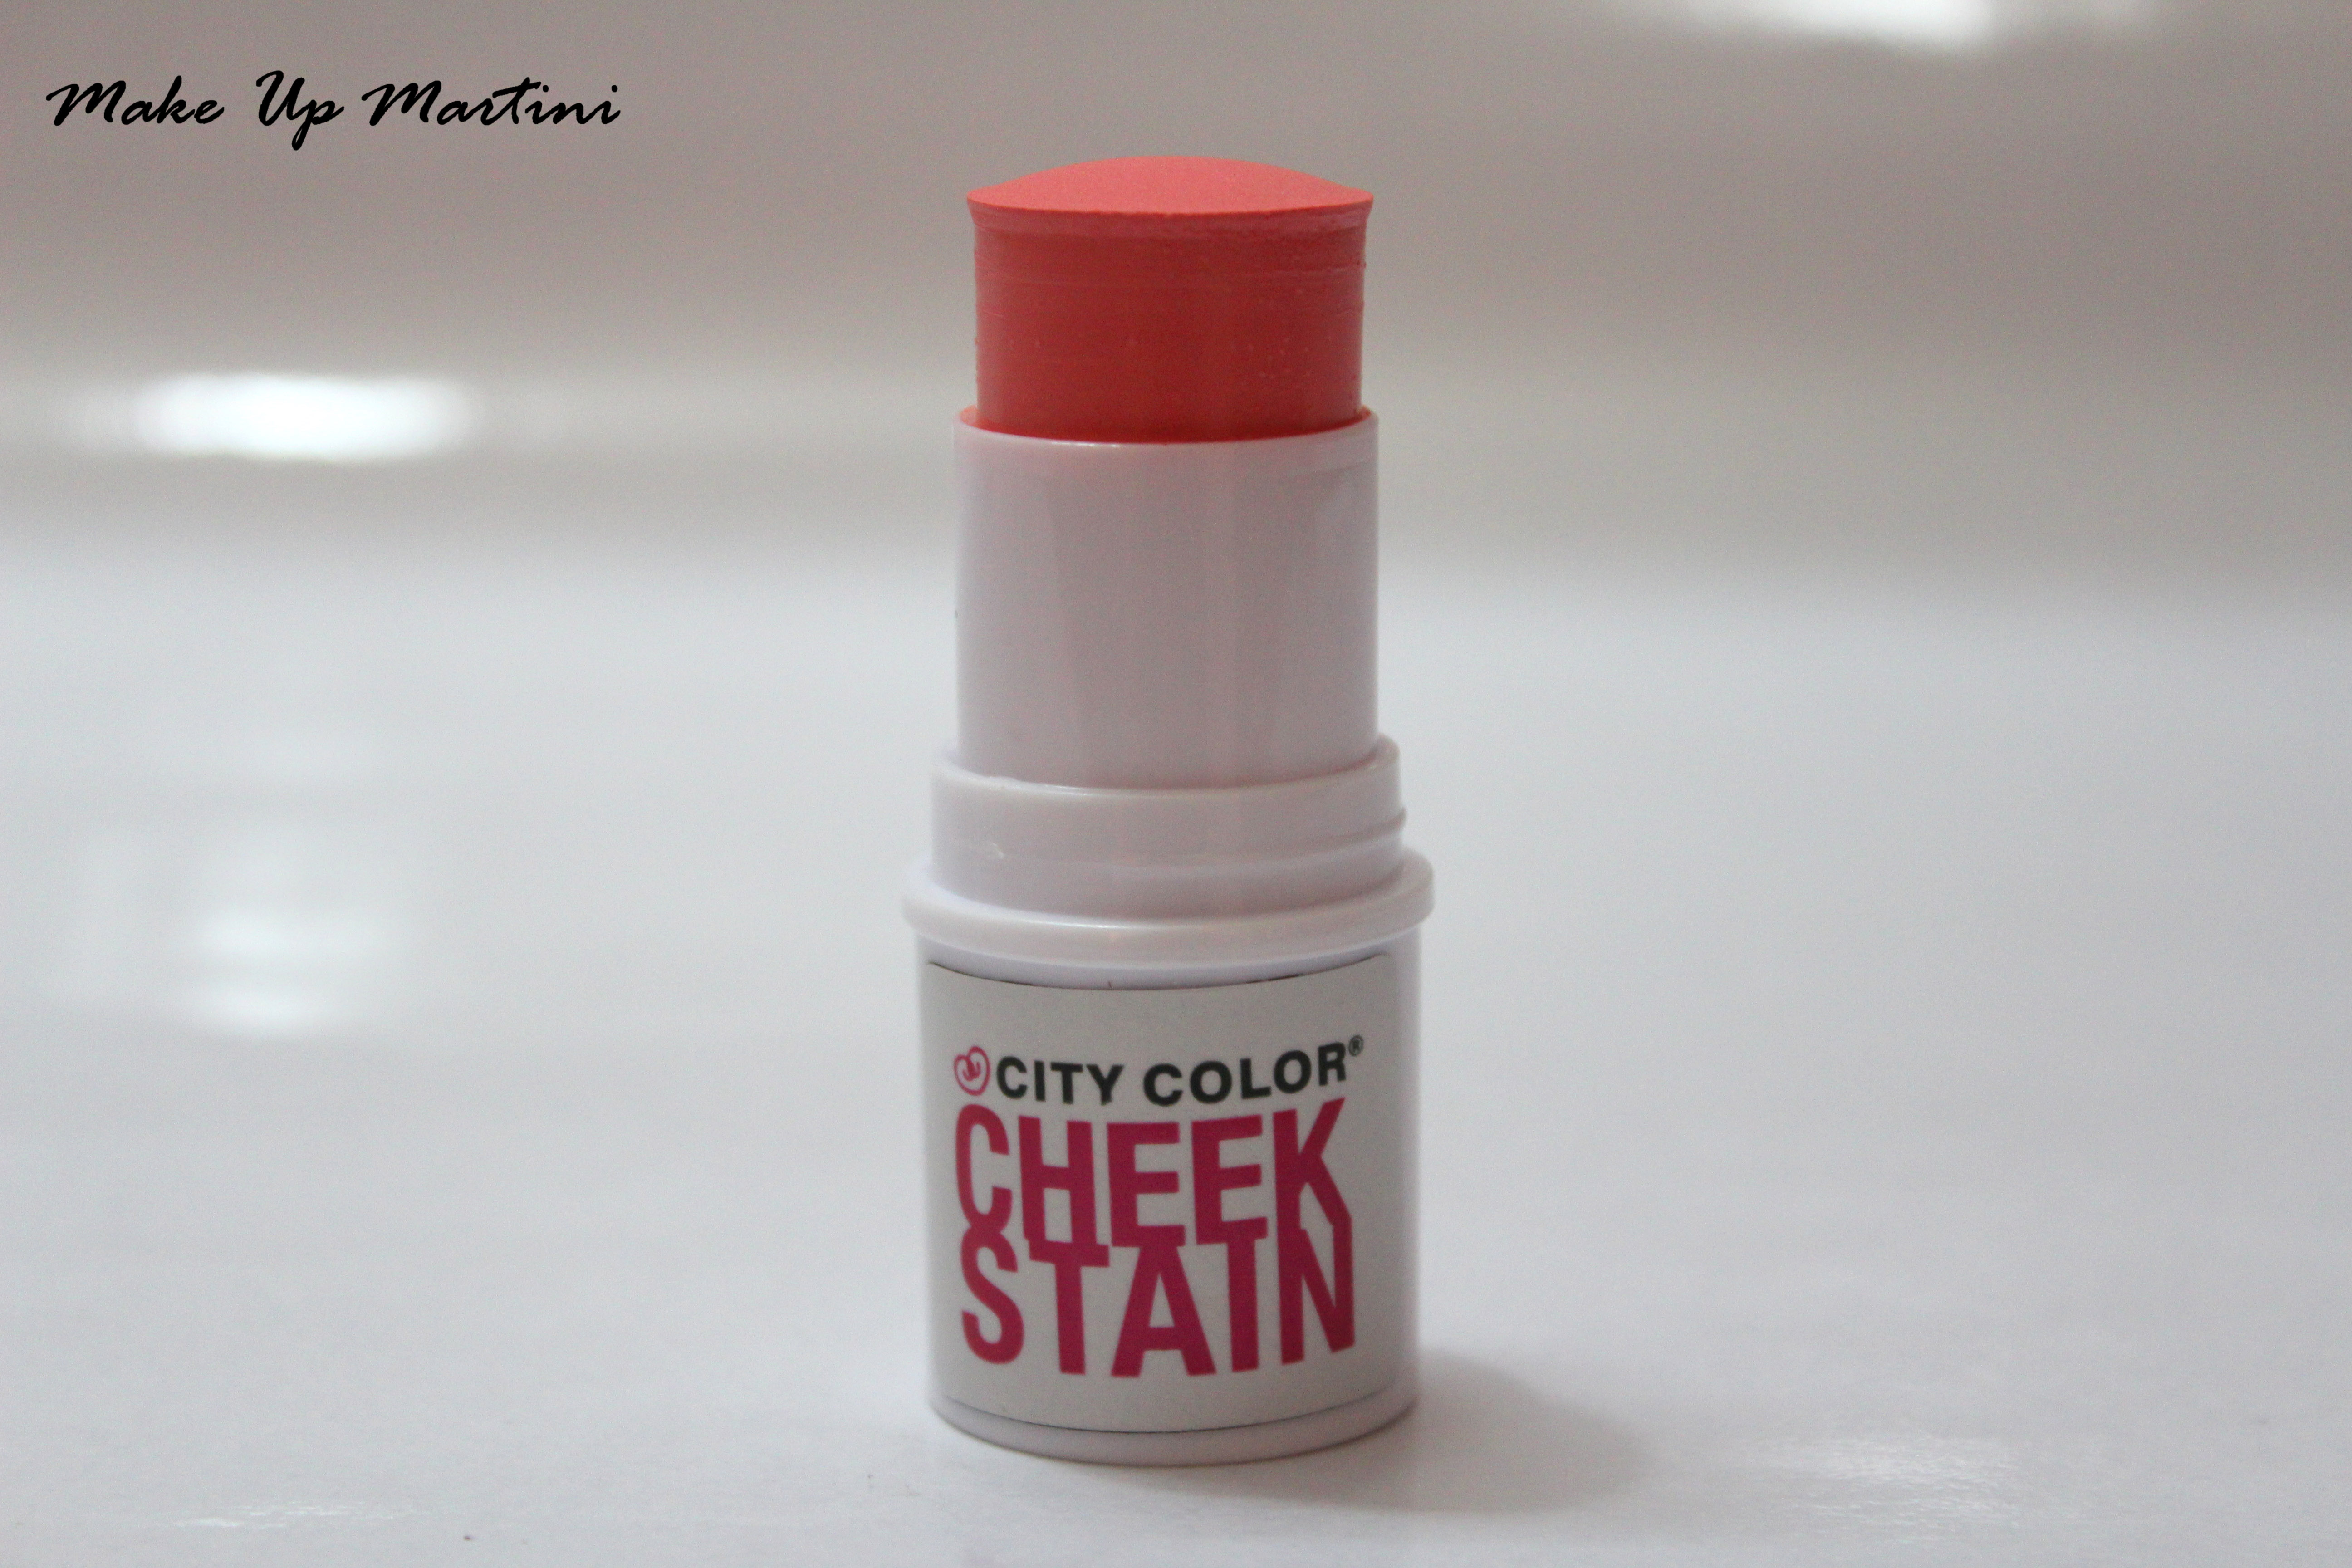 City Color Cheek Stain in Coral Review